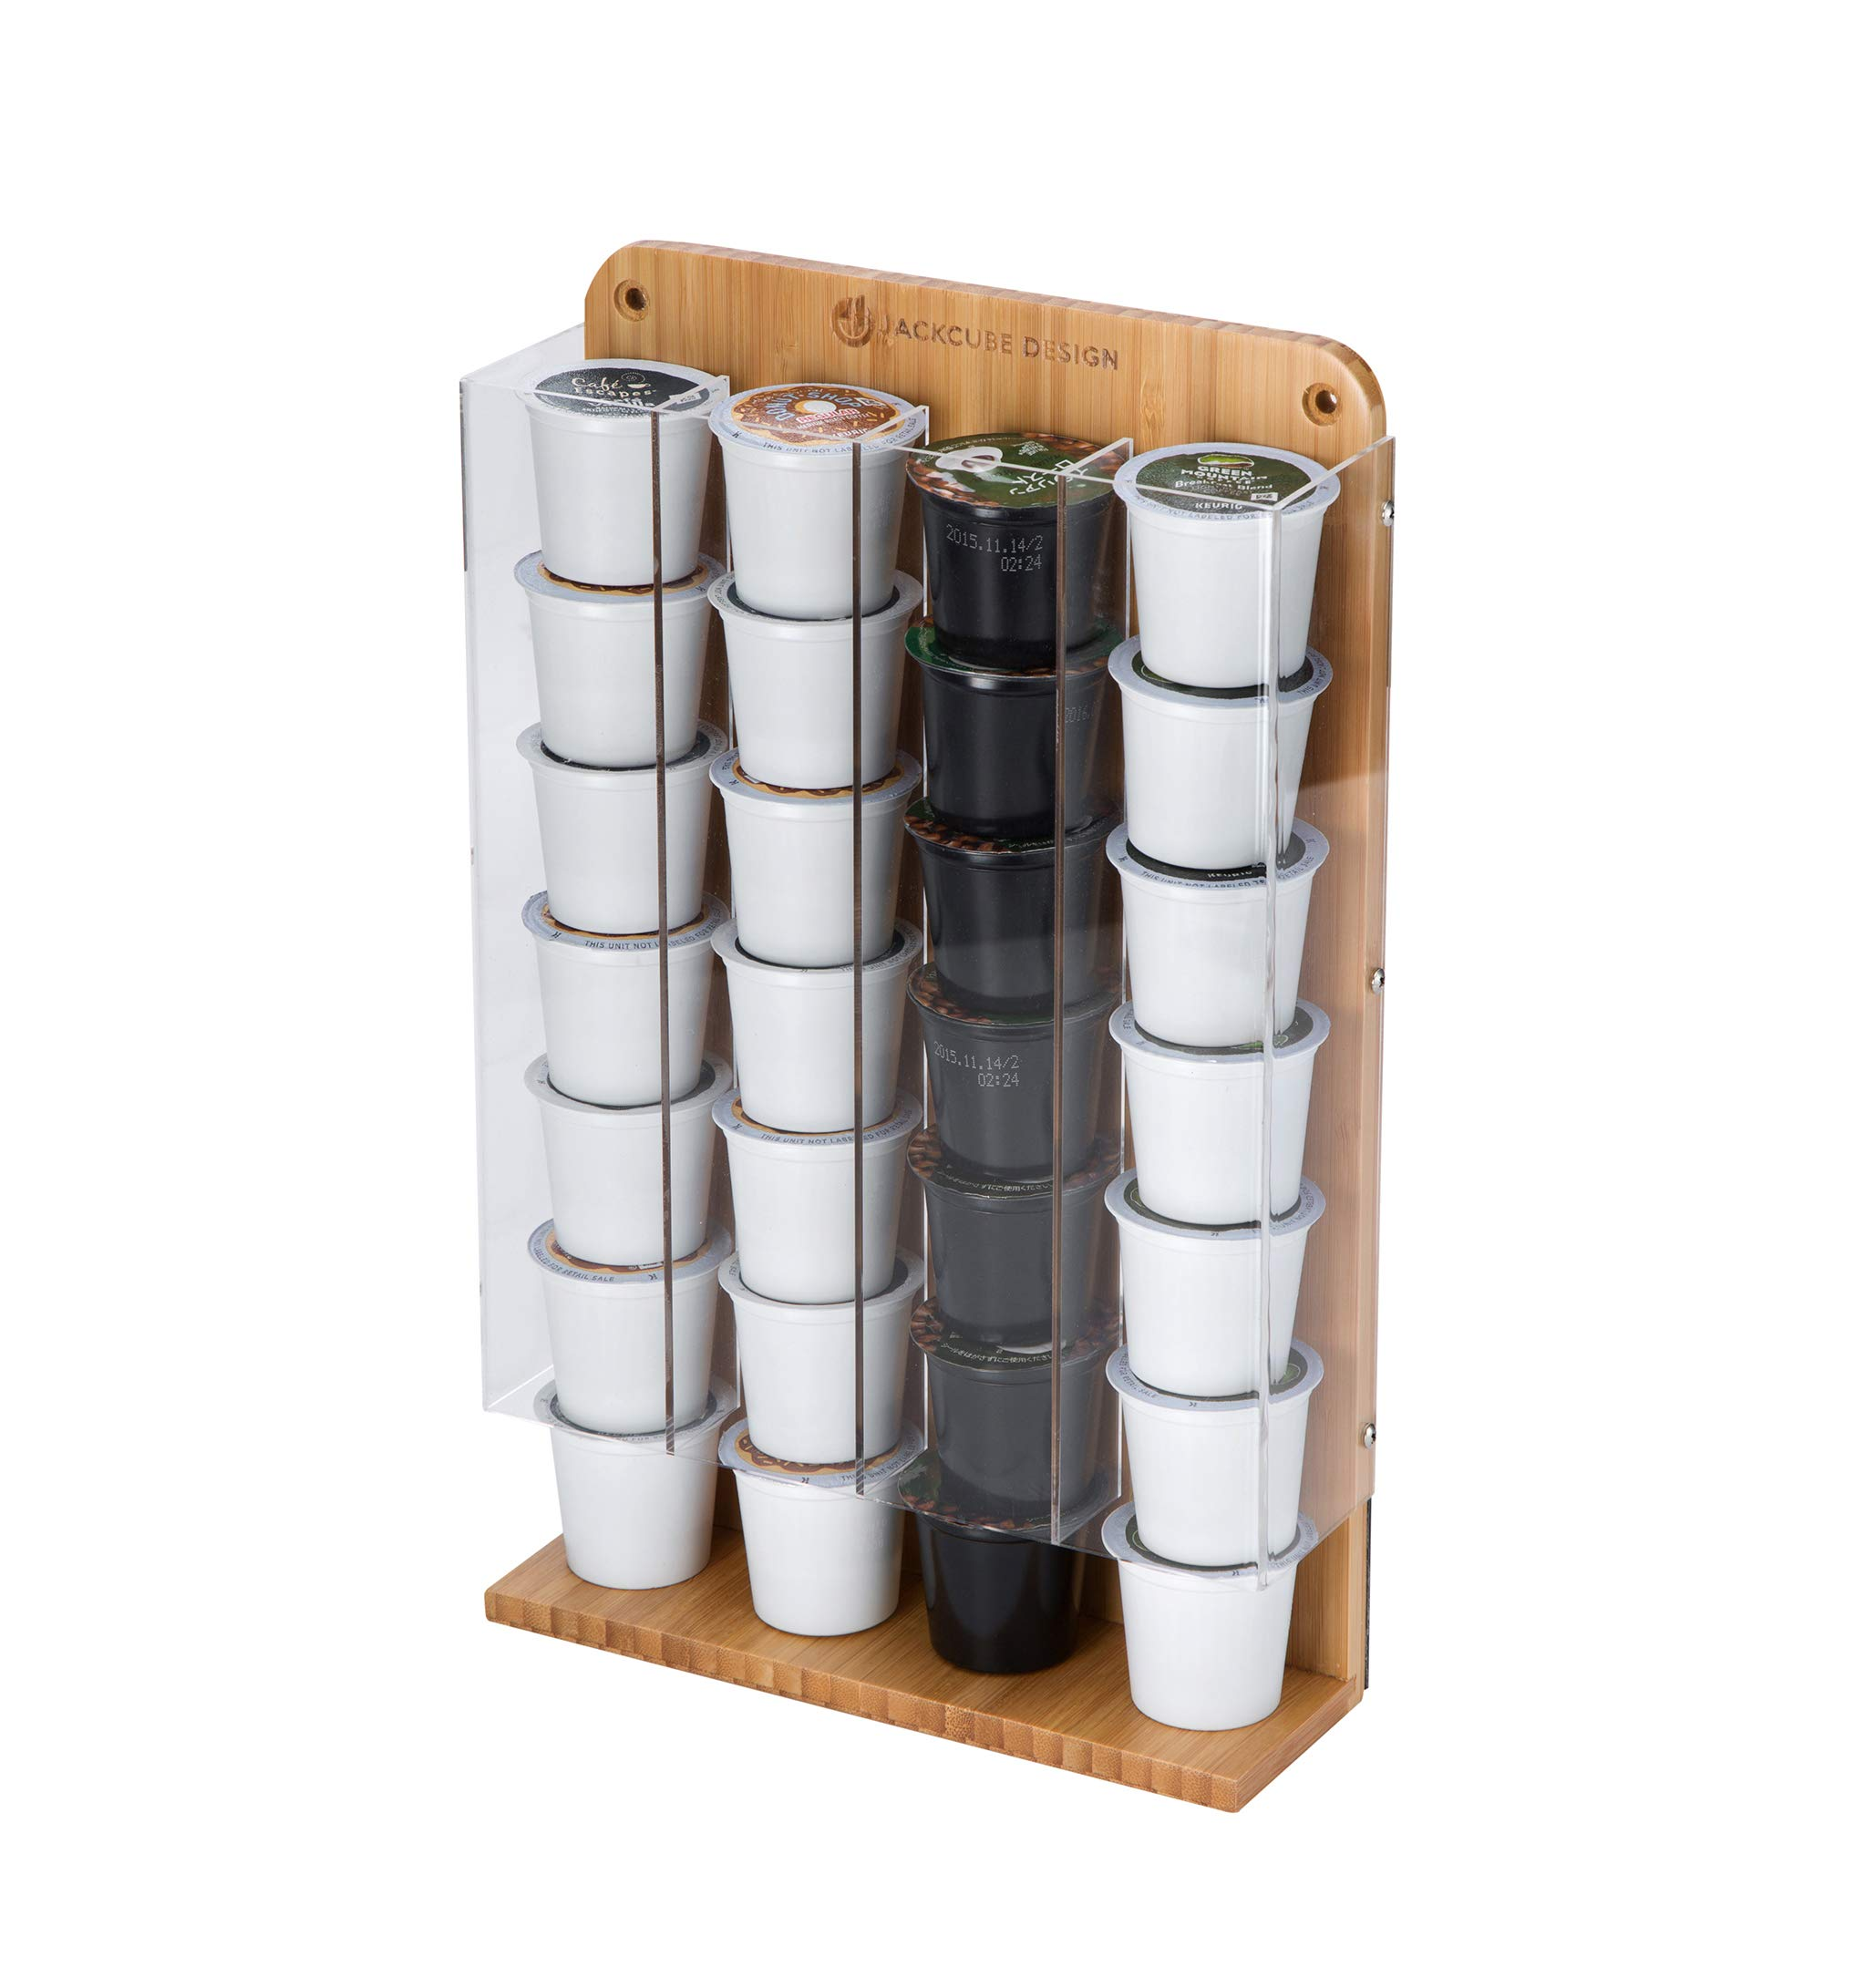 Wall Mount K Cup Coffee Dispenser Organizer with Magnet(Bamboo-MK189D)